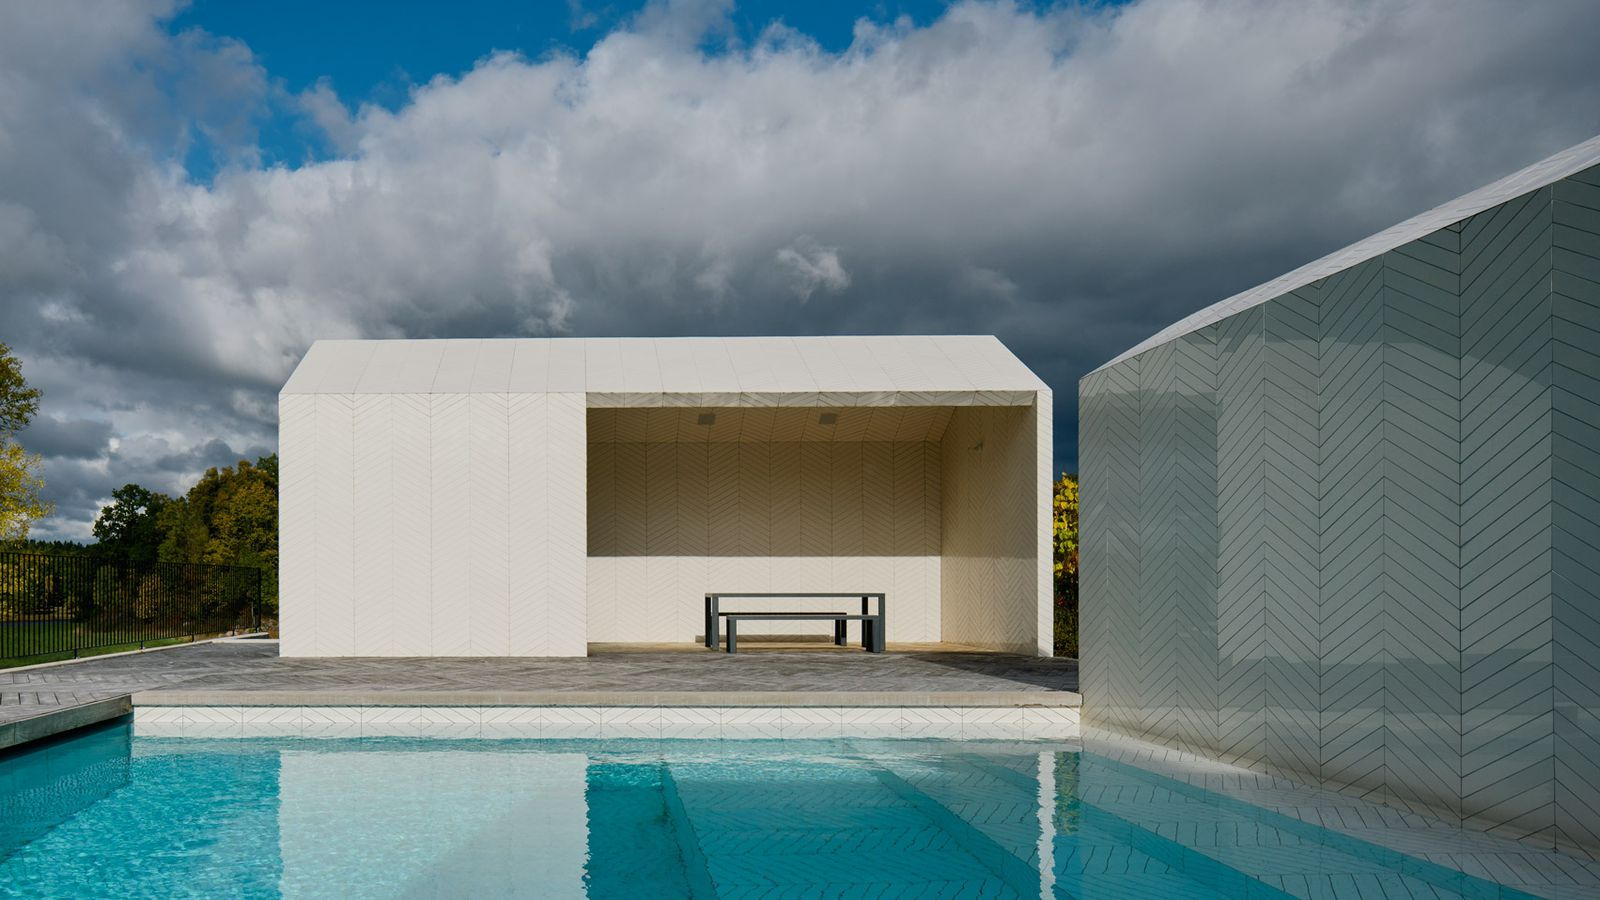 Swimming Pool Architects : Striking swimming pool complex is clad entirely in a white